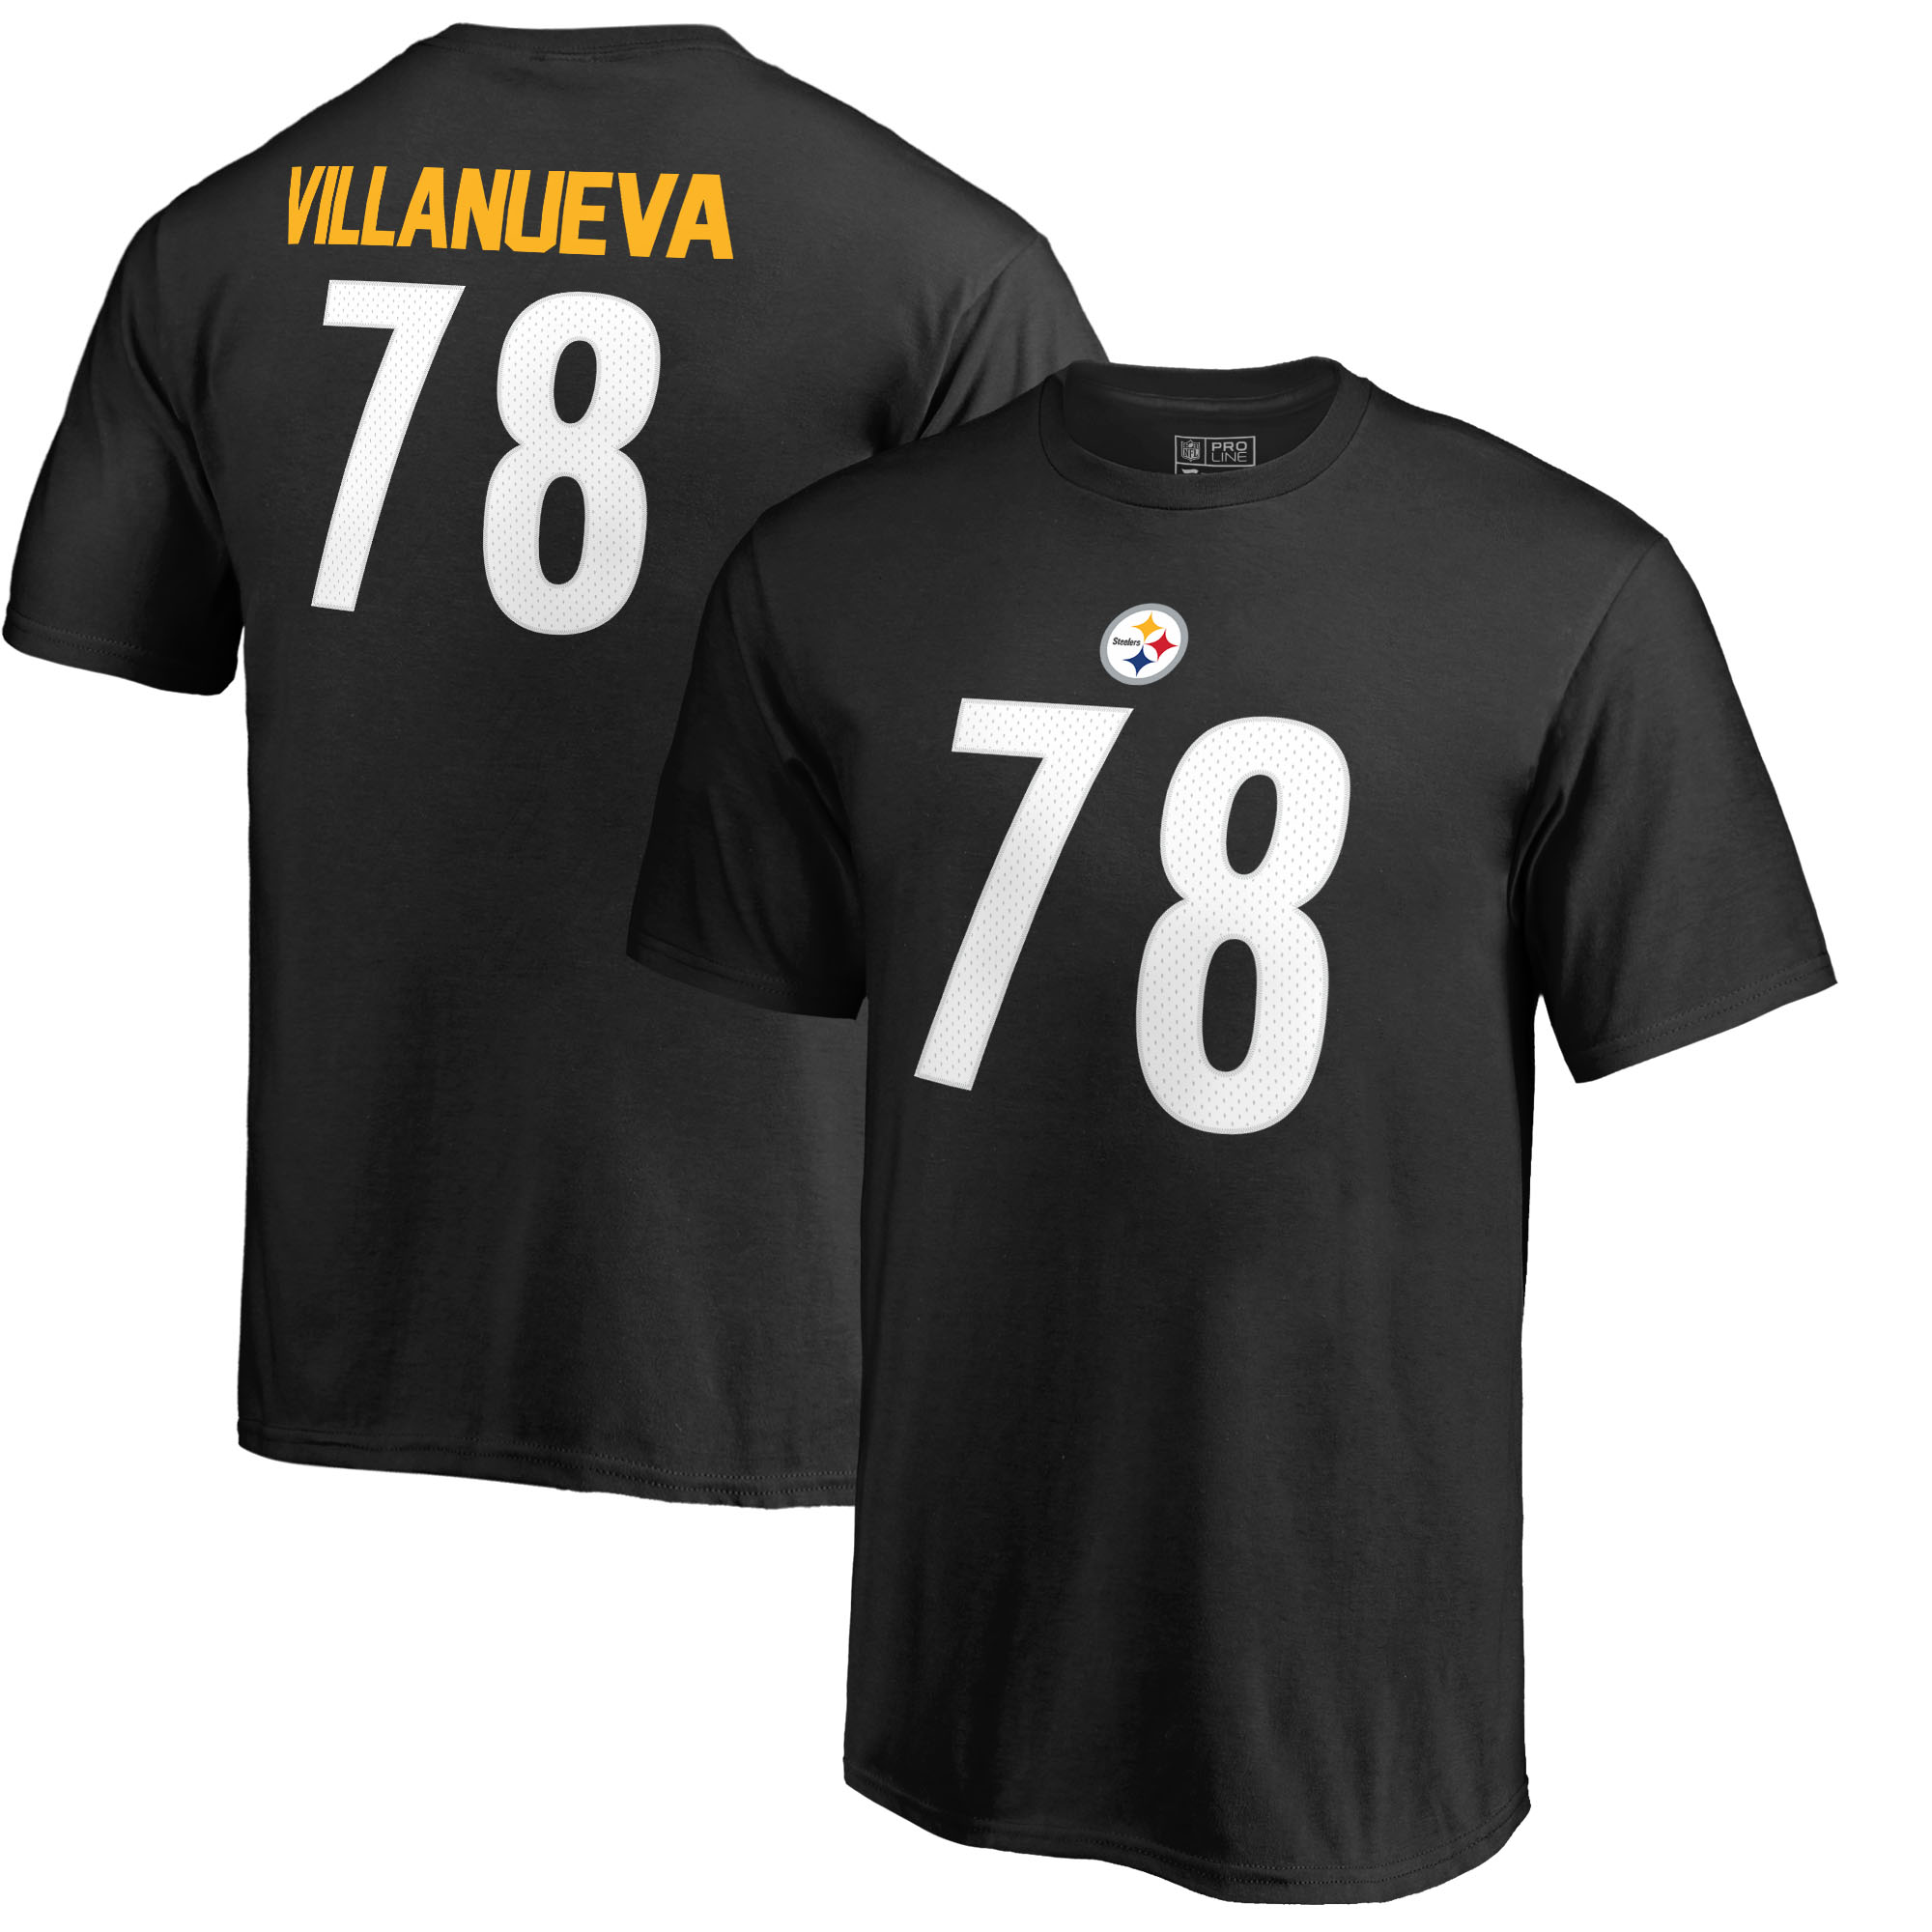 Alejandro Villanueva Pittsburgh Steelers NFL Pro Line by Fanatics Branded Youth Authentic Stack Name & Number T-Shirt - Black